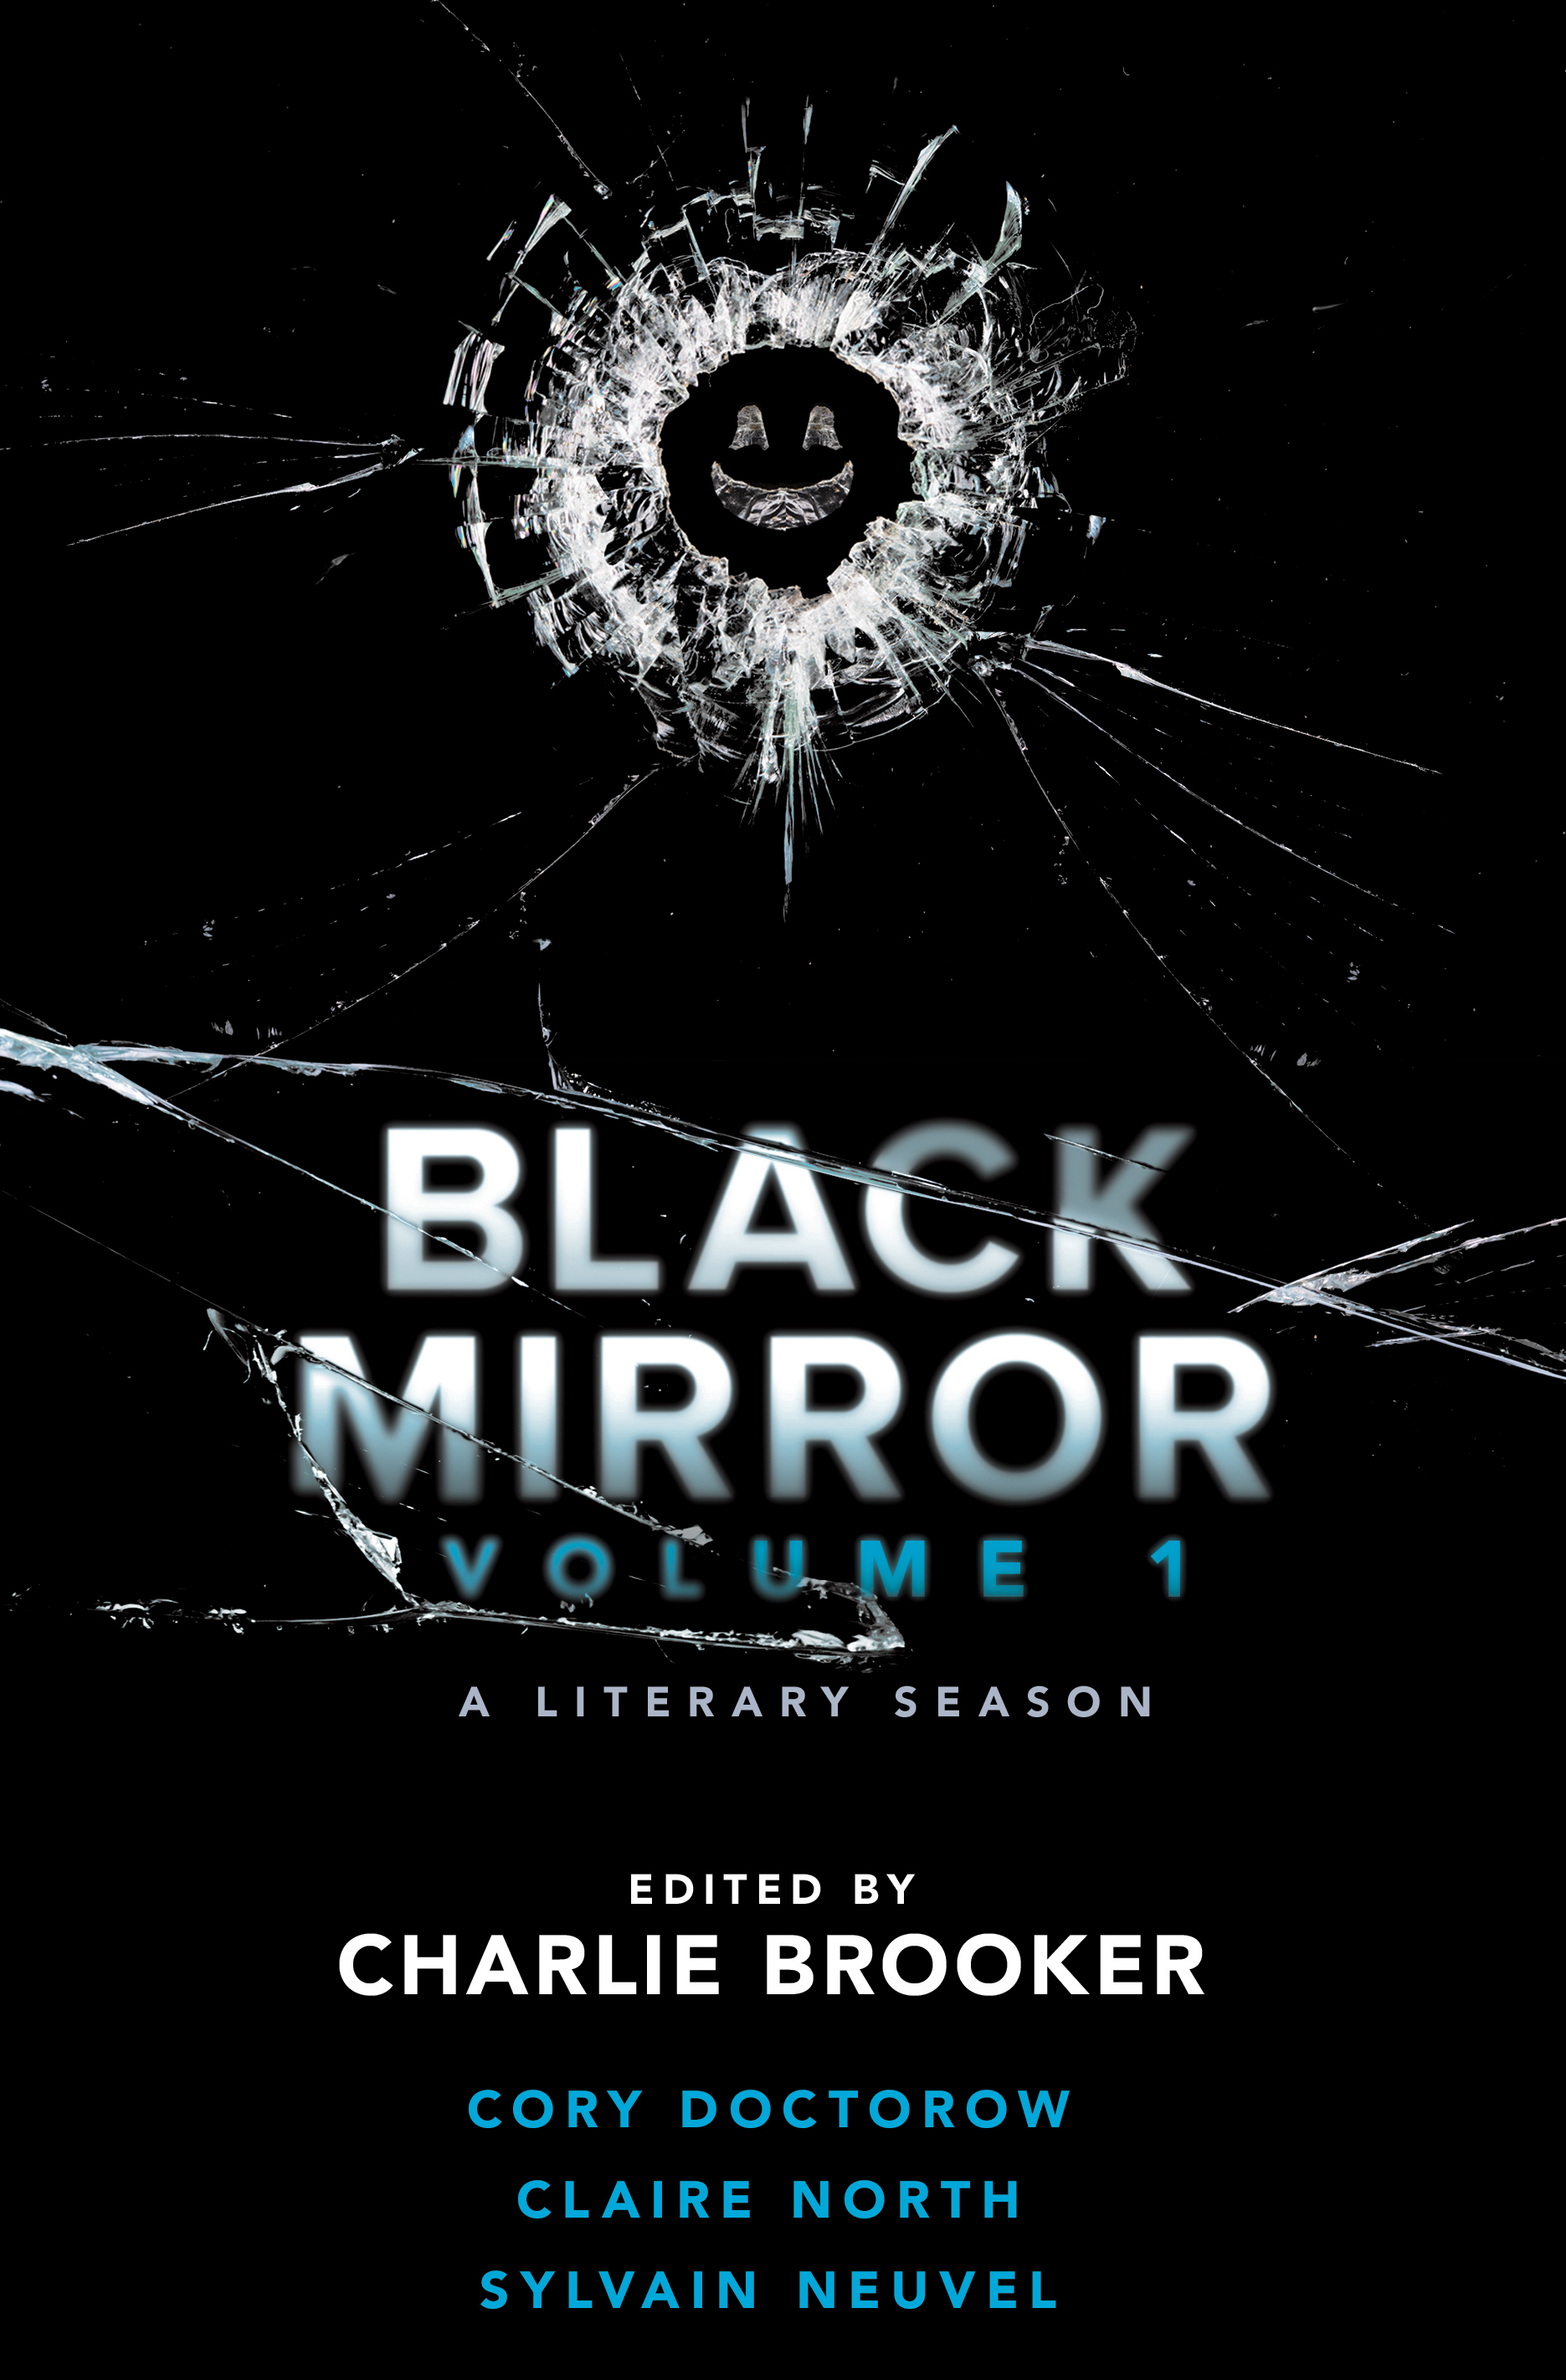 Black Mirror: Volume I - Random House Books